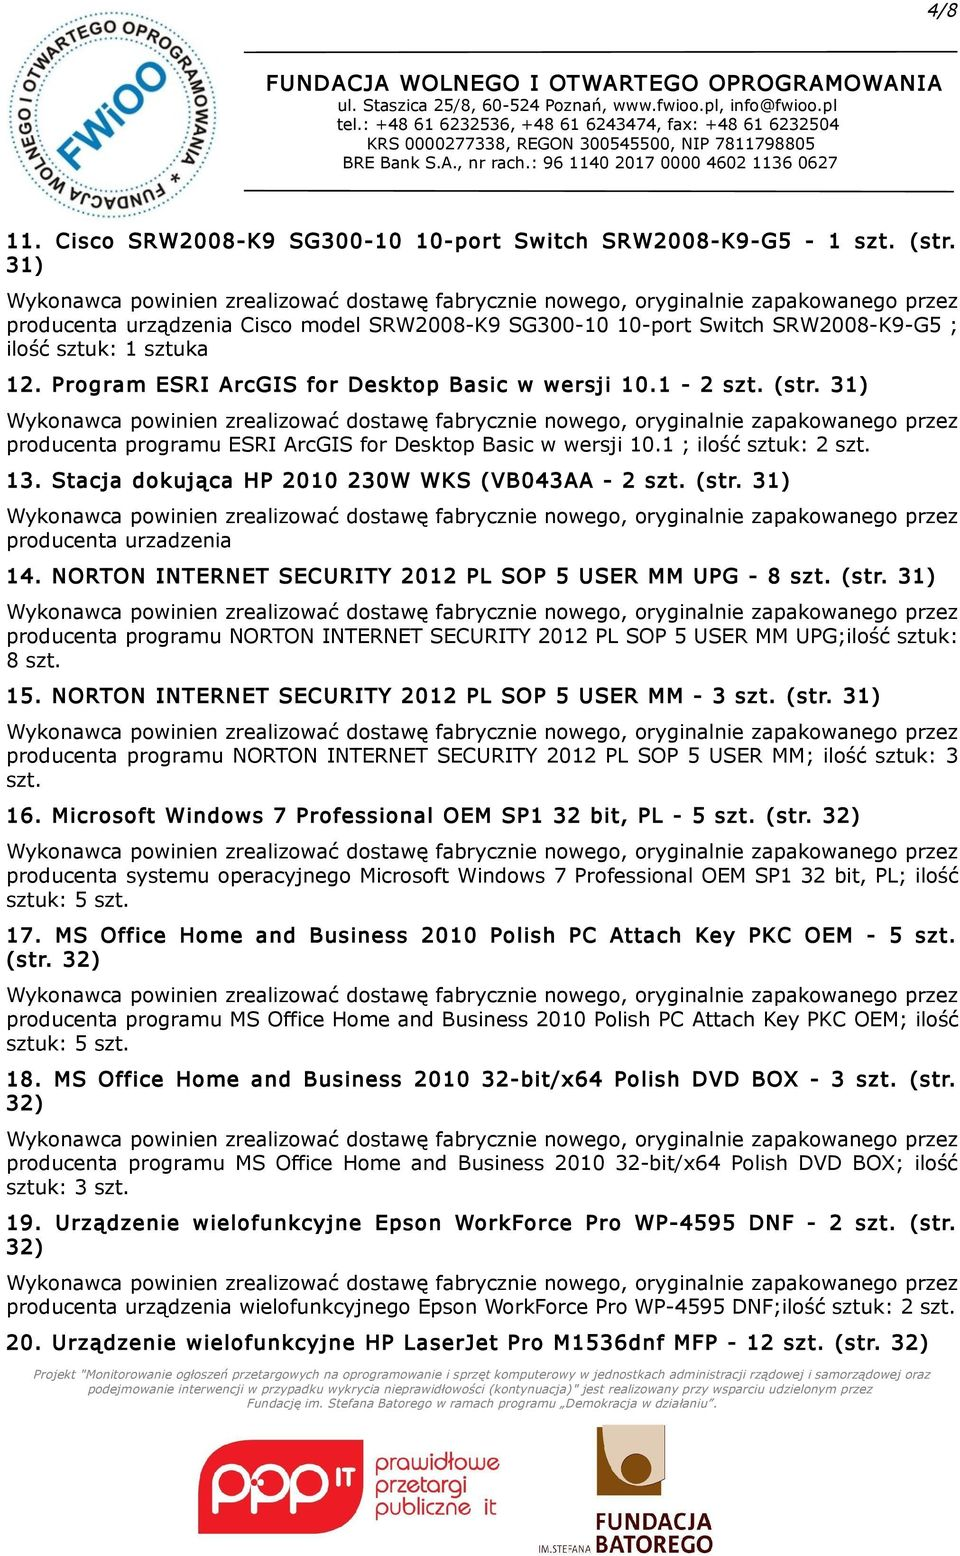 Stacja dokująca HP 2010 230W WKS ( VB043AA - 2 (str. 31) producenta urzadzenia 14. NORTON INTERNET SECURITY 2012 PL SOP 5 USER MM UPG - 8 (str.